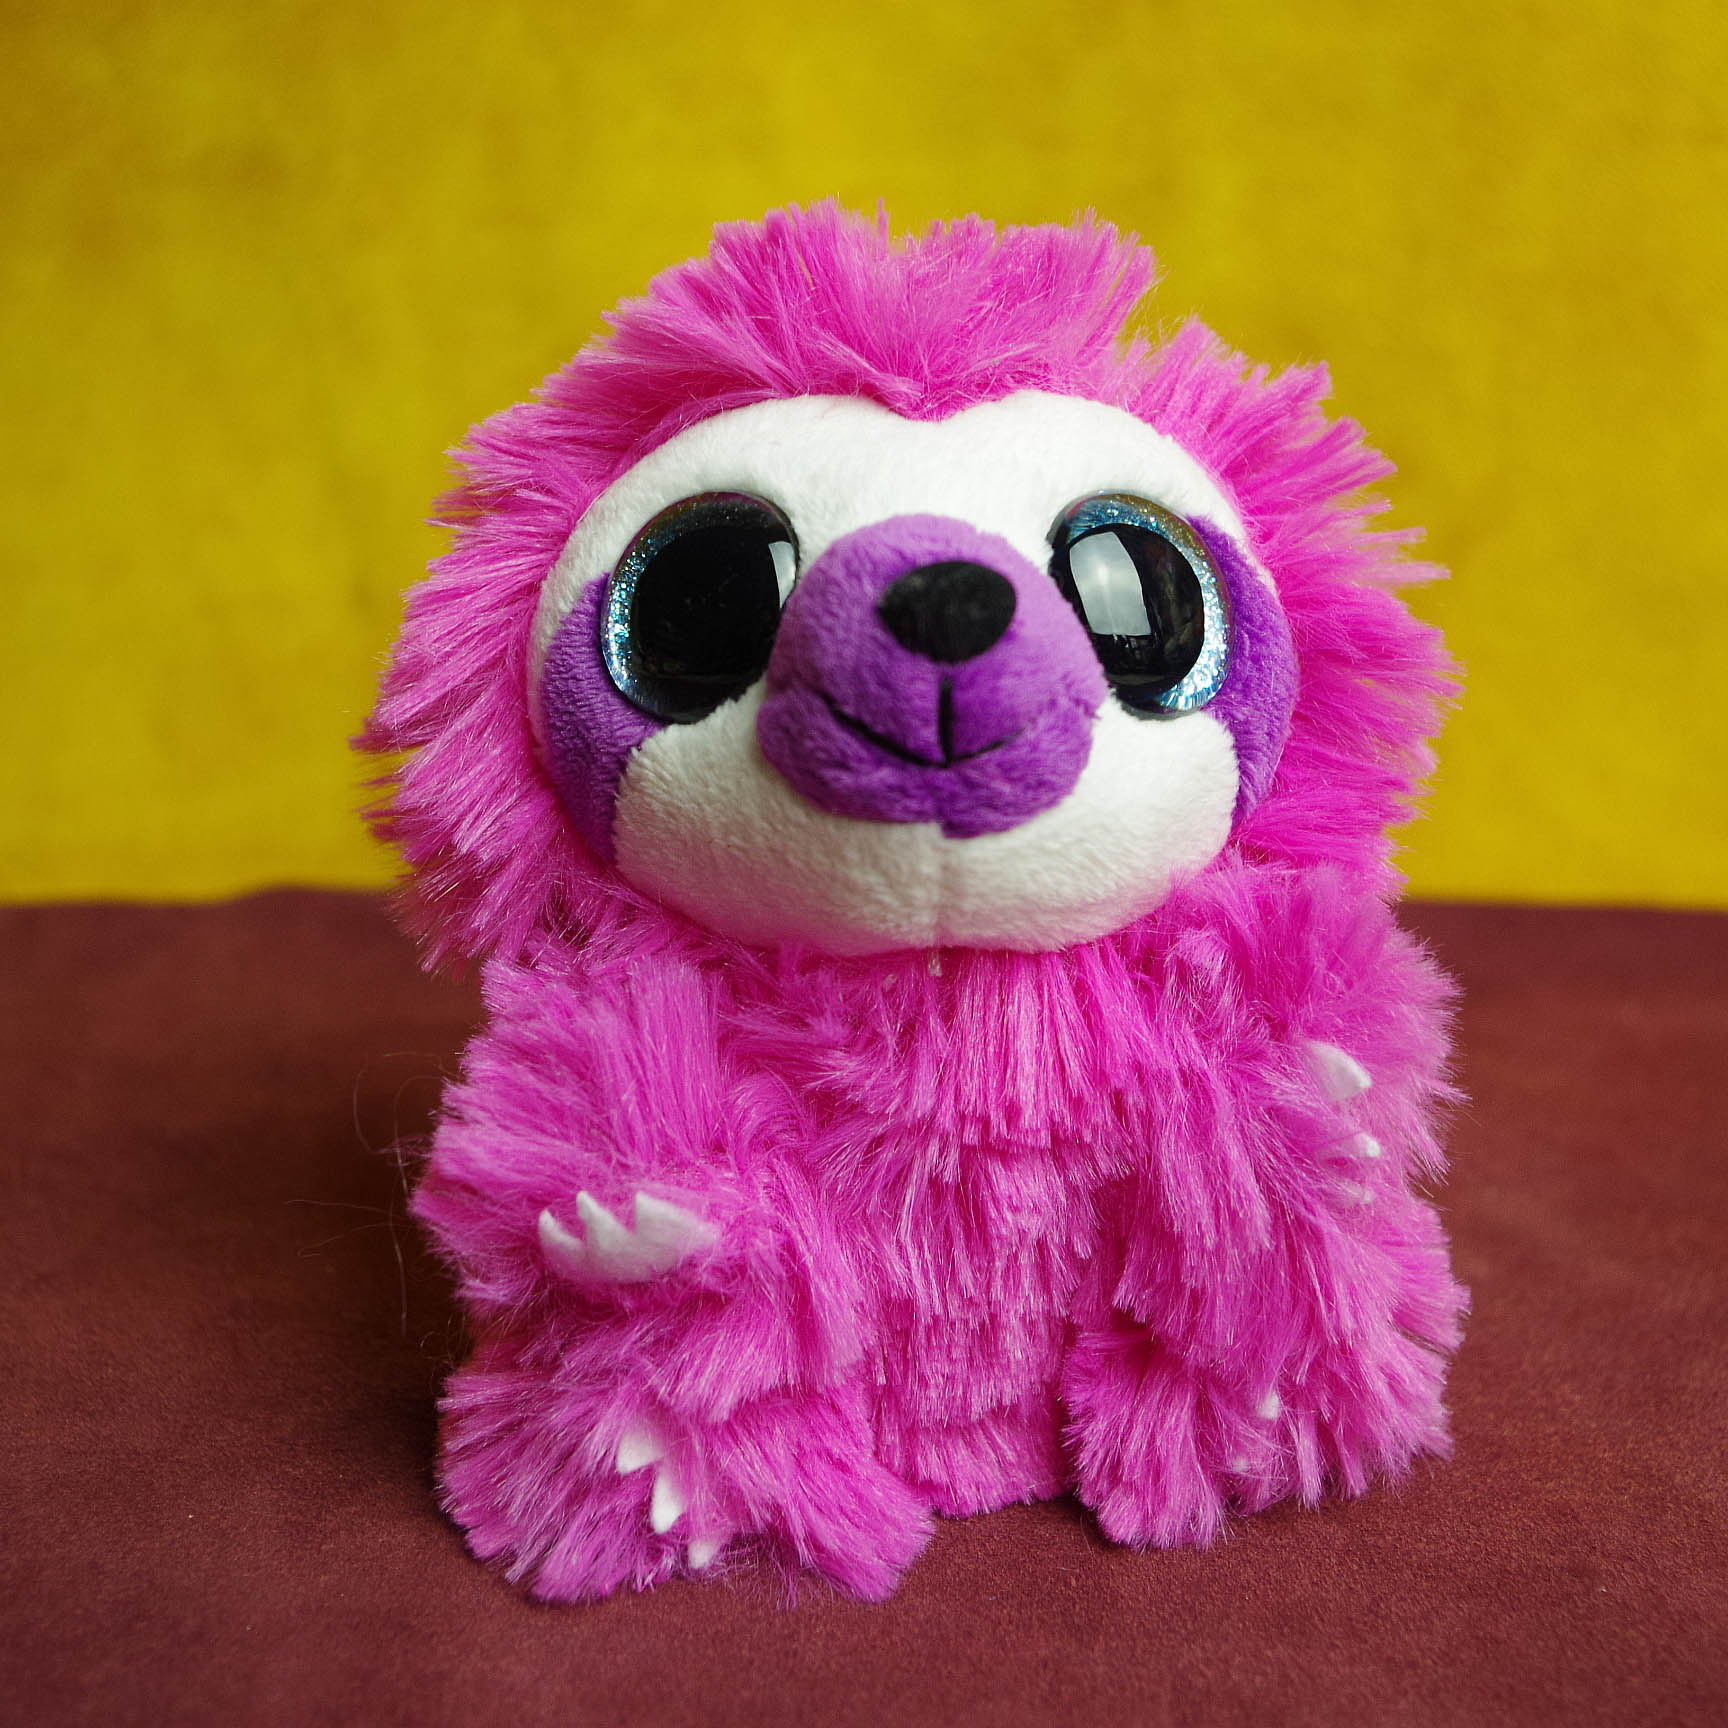 30a5dac3432f Ty wild republic big eyes pink hedgehog small animal plush toy doll dolls  gift